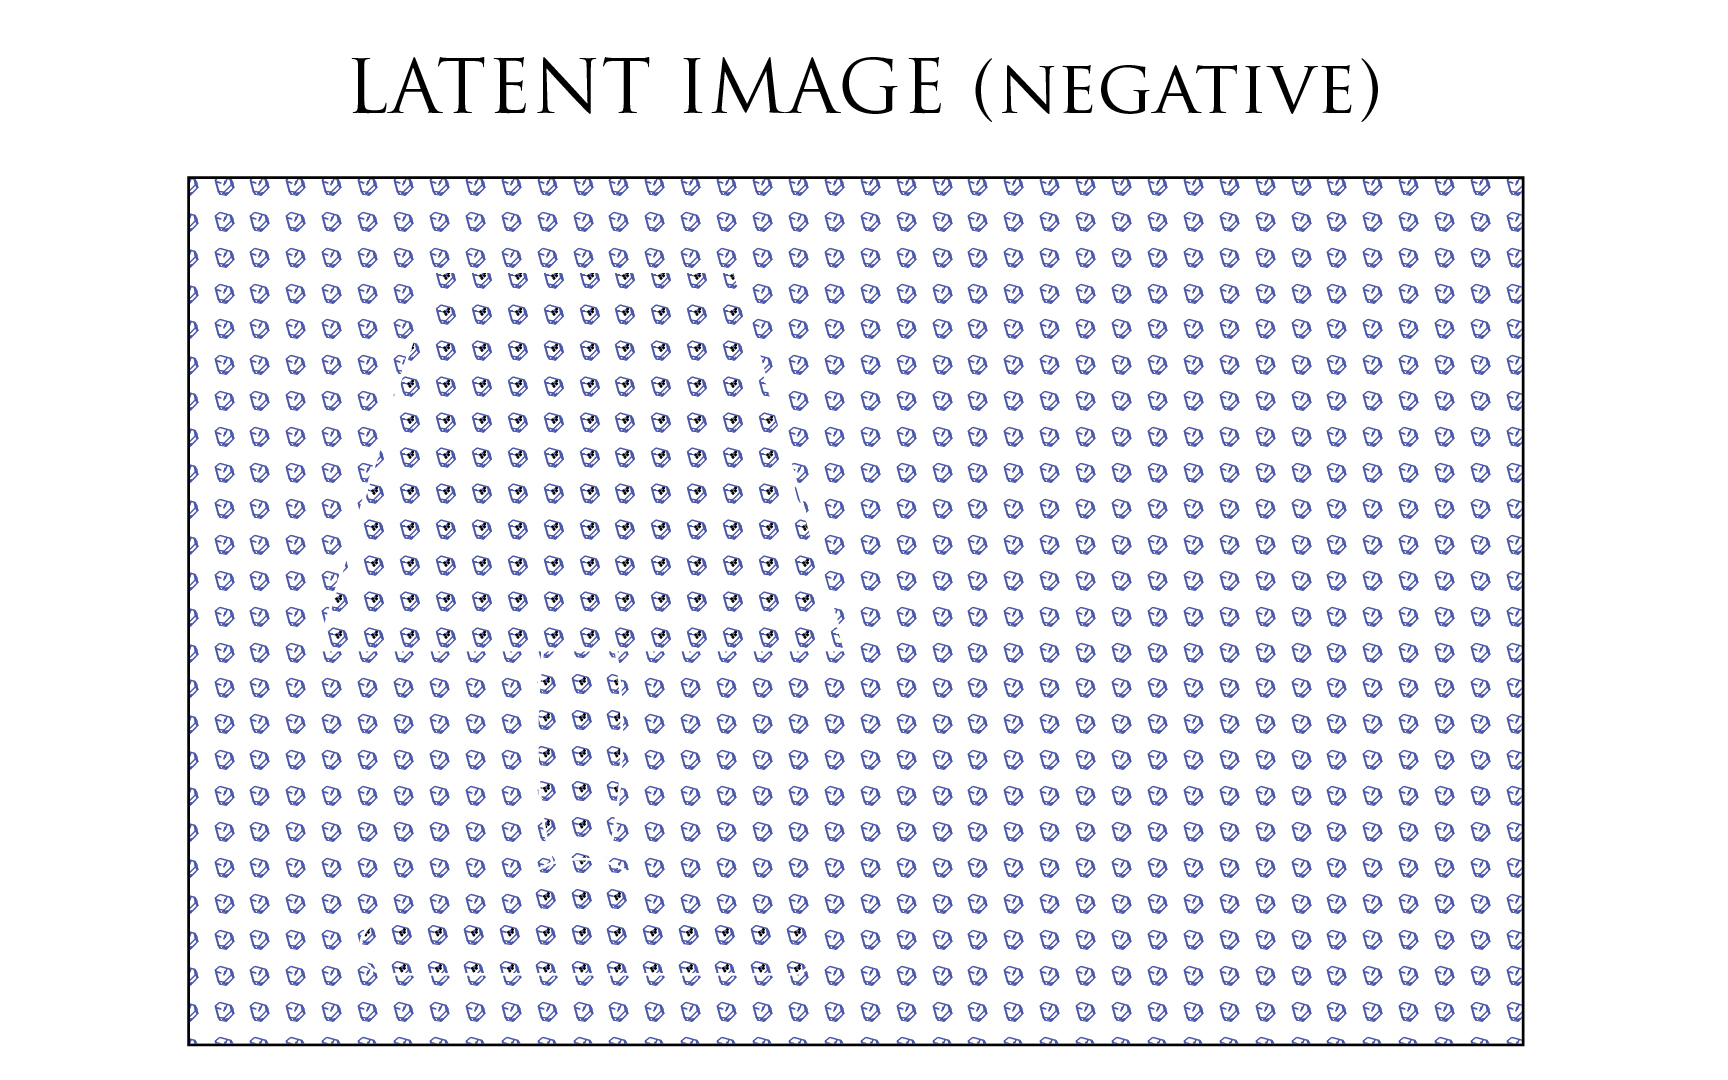 Illustration: Latent image example